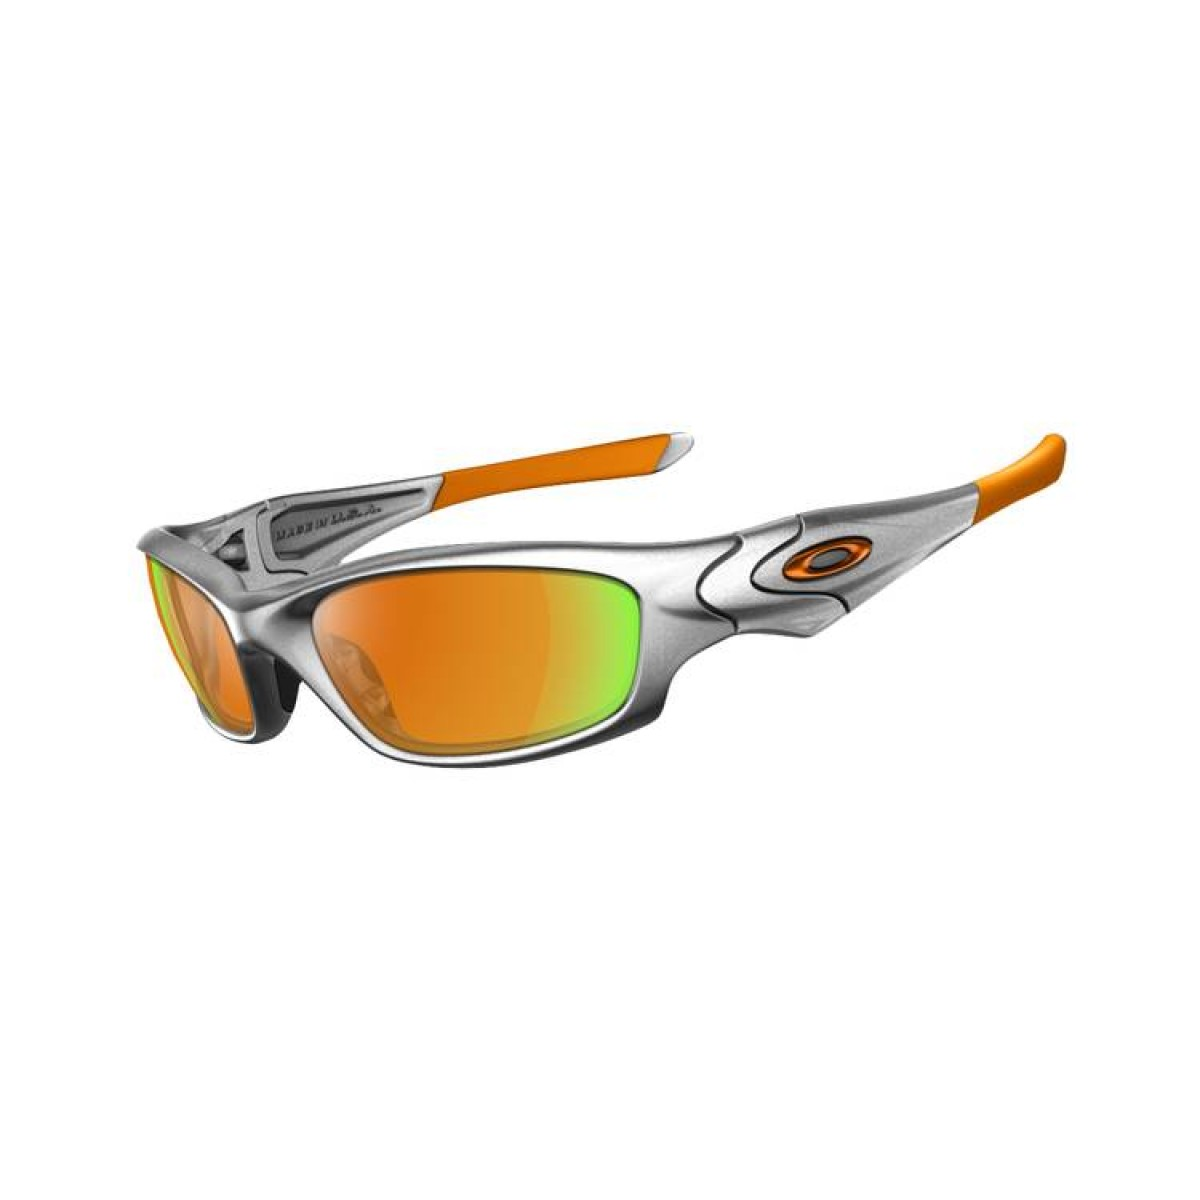 oakley_straight_jacket_sunglasses_silver_frame_with_fire_iridium_lenses_04-331.j